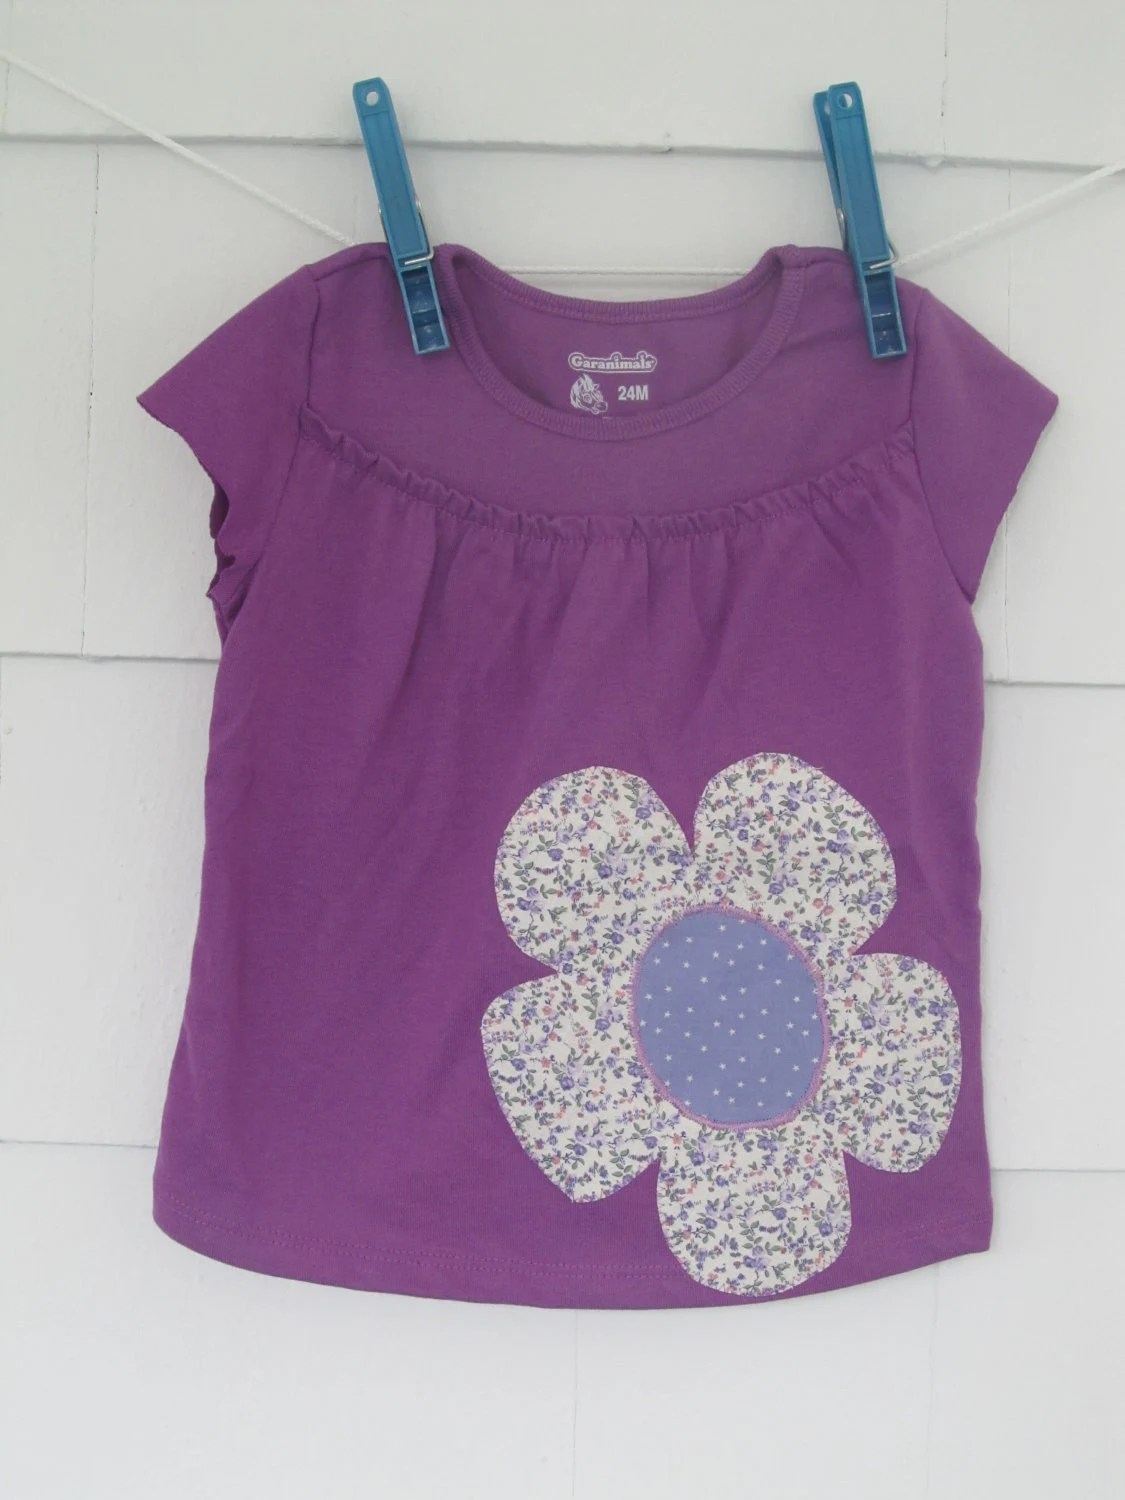 Toddler girl's floral applique short sleeve t shirt,  purplewith vintage floral fabric, 24M